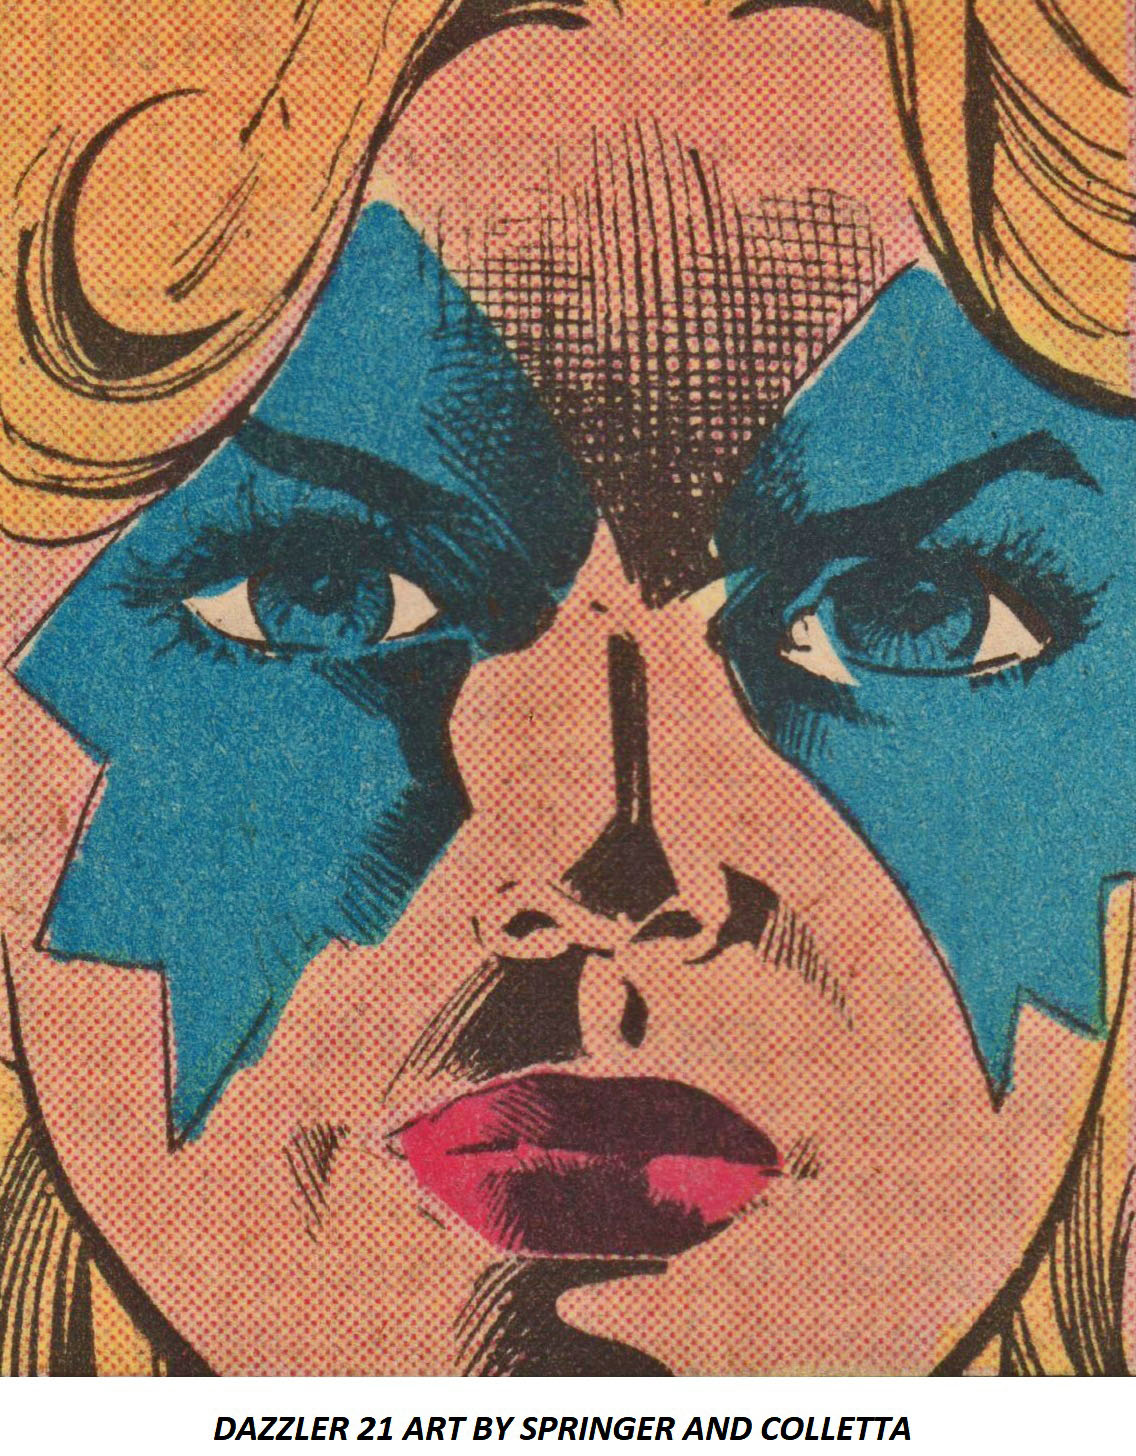 DAZZLER 21 ART BY FRANK SPRINGER AND VINCE COLLETTA